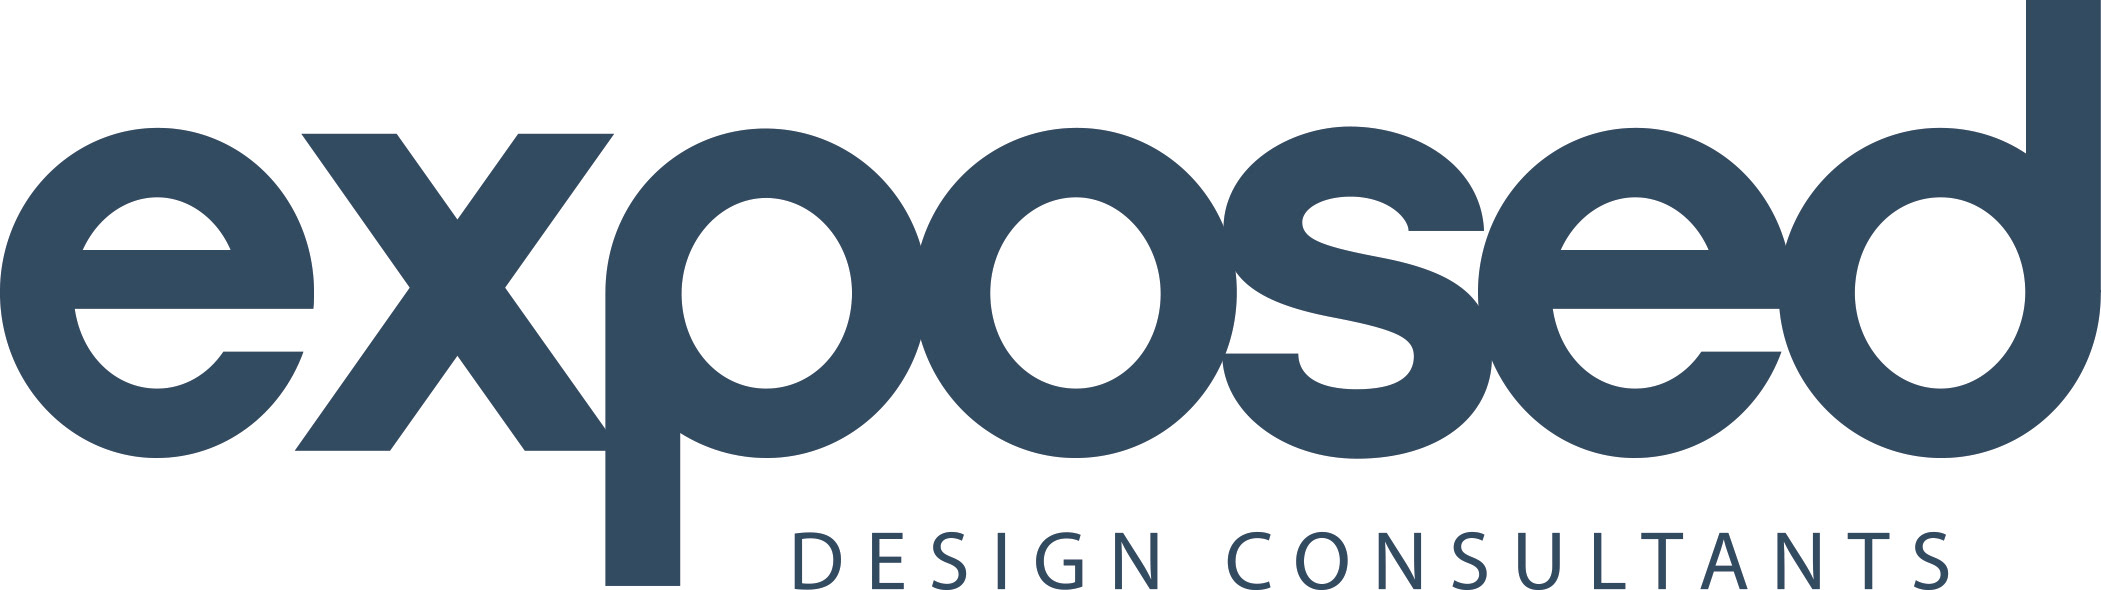 Exposed Design Consultants